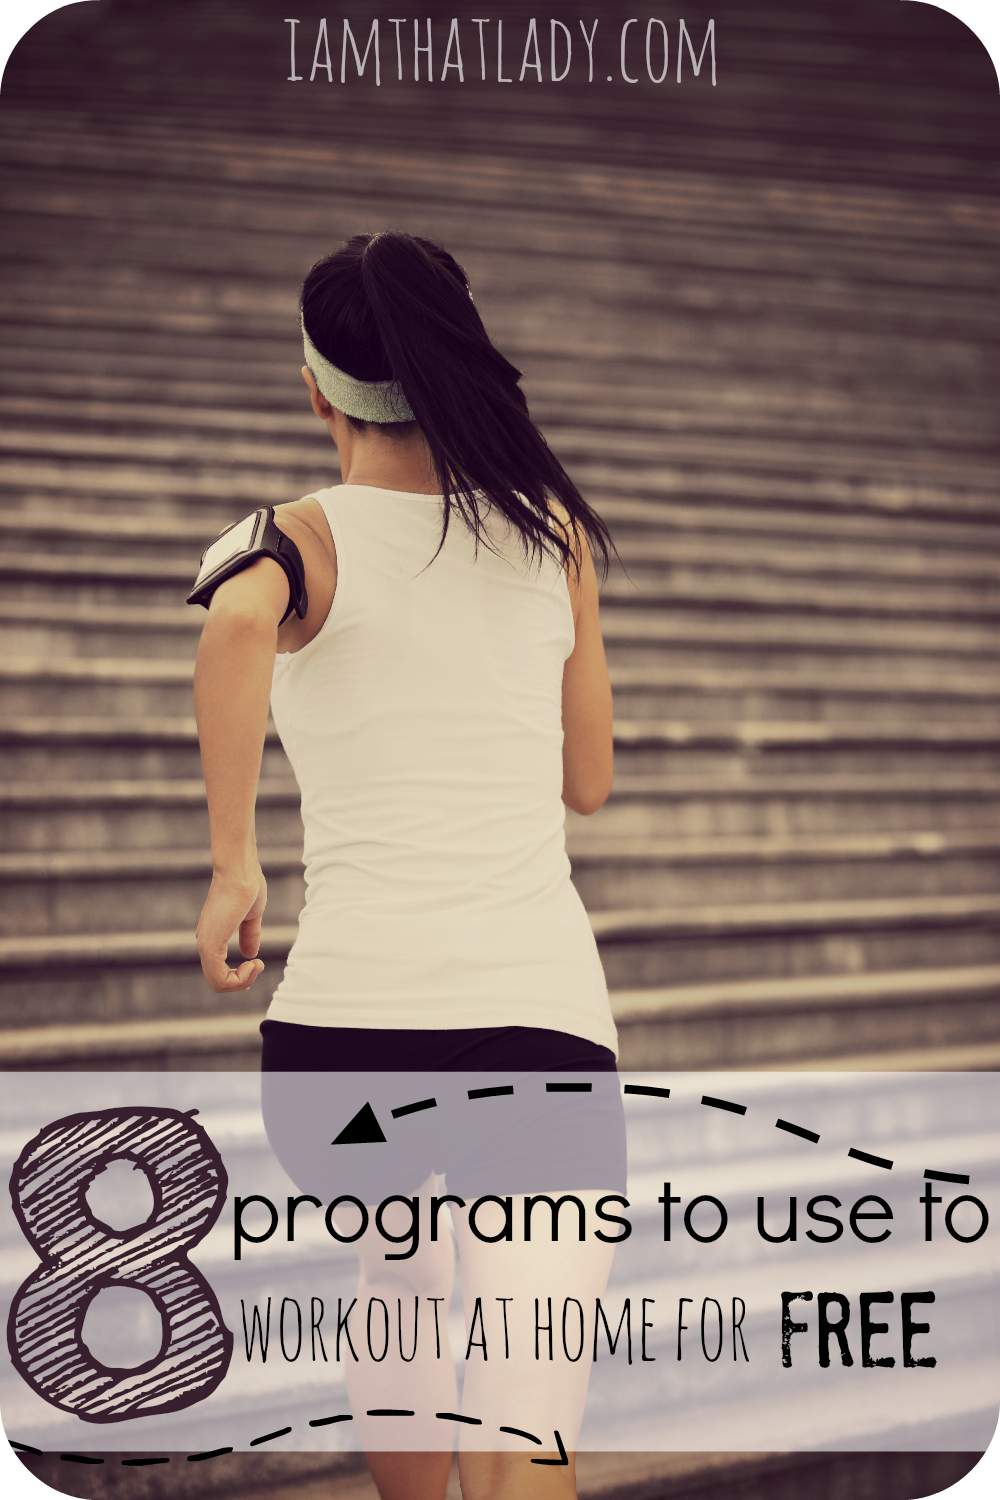 I always have the best intentions of working out, but let's face it...Being a mom of four makes it hard for me to afford the cost of a gym membership. Here are eight programs that I've found that are awesome (and free) ways to workout from the comfort of my home in 15 minutes or less!